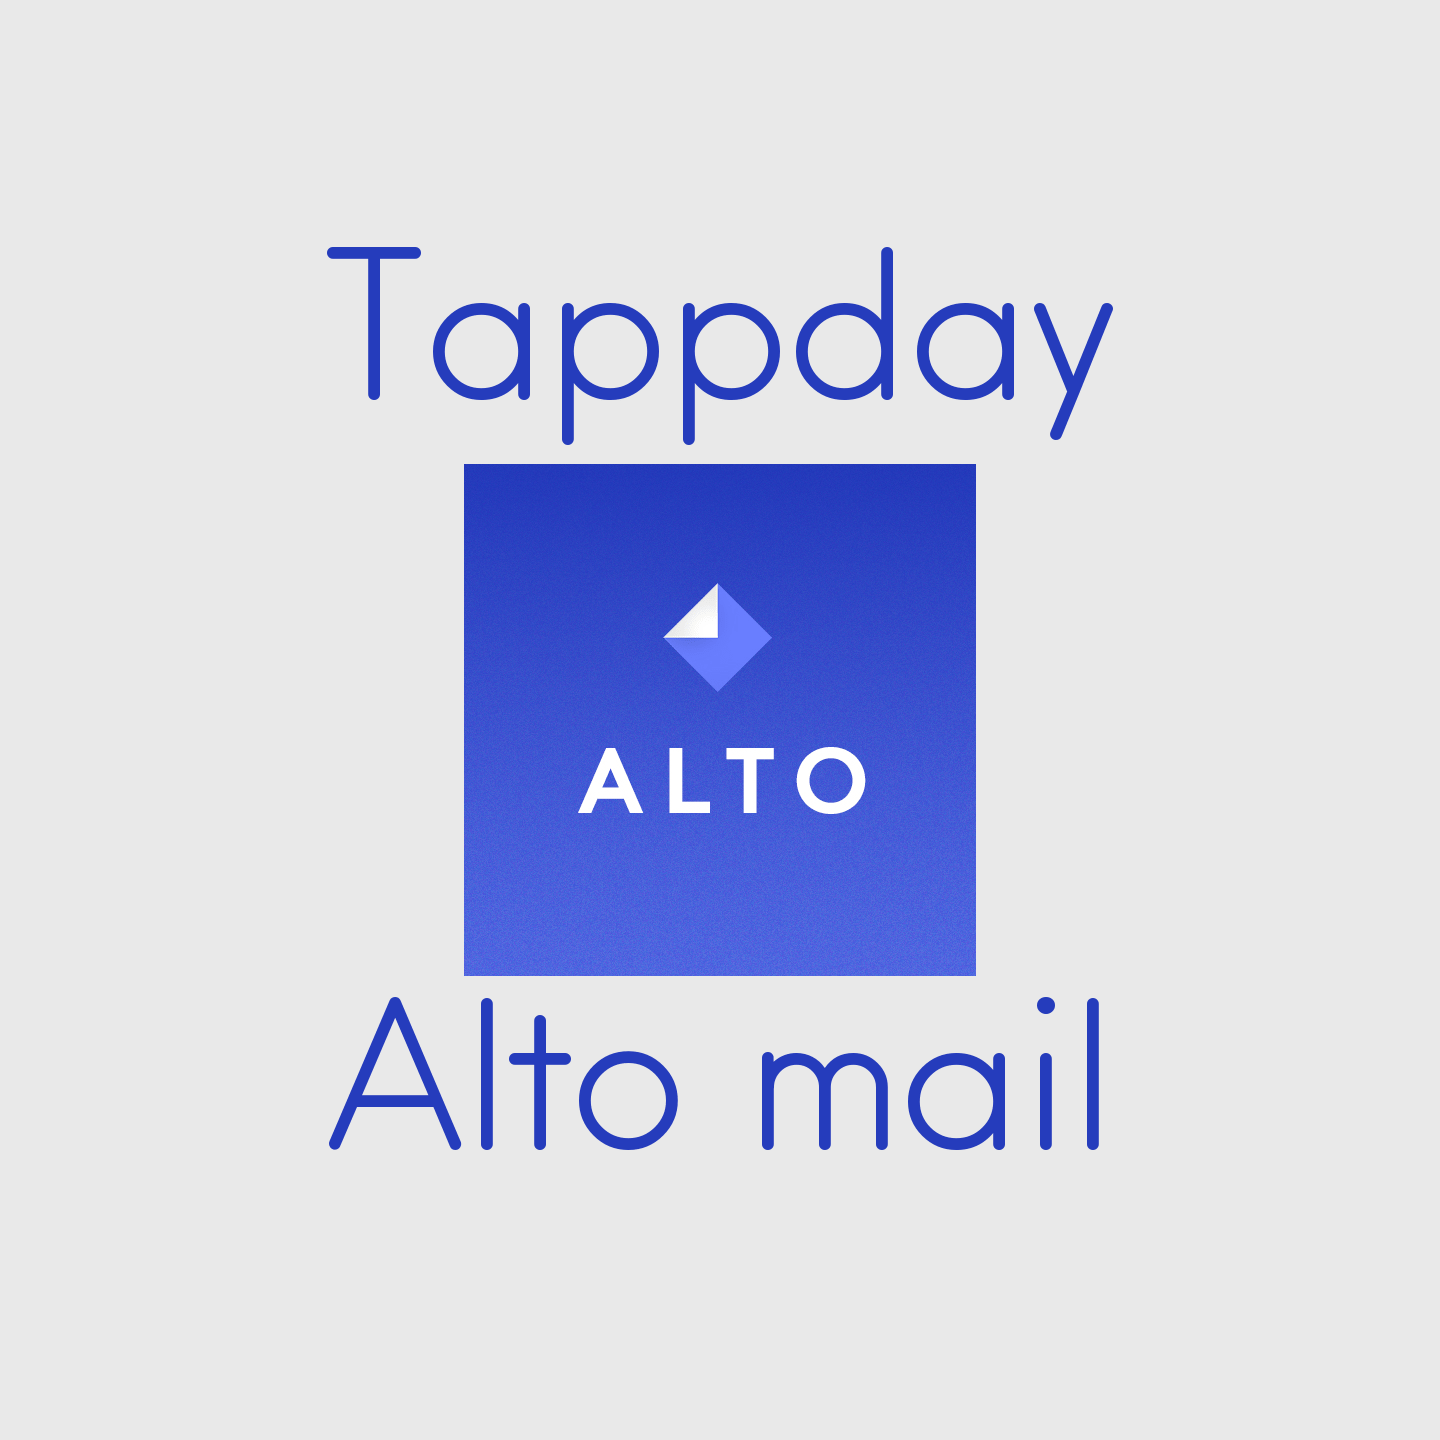 tappday alto email